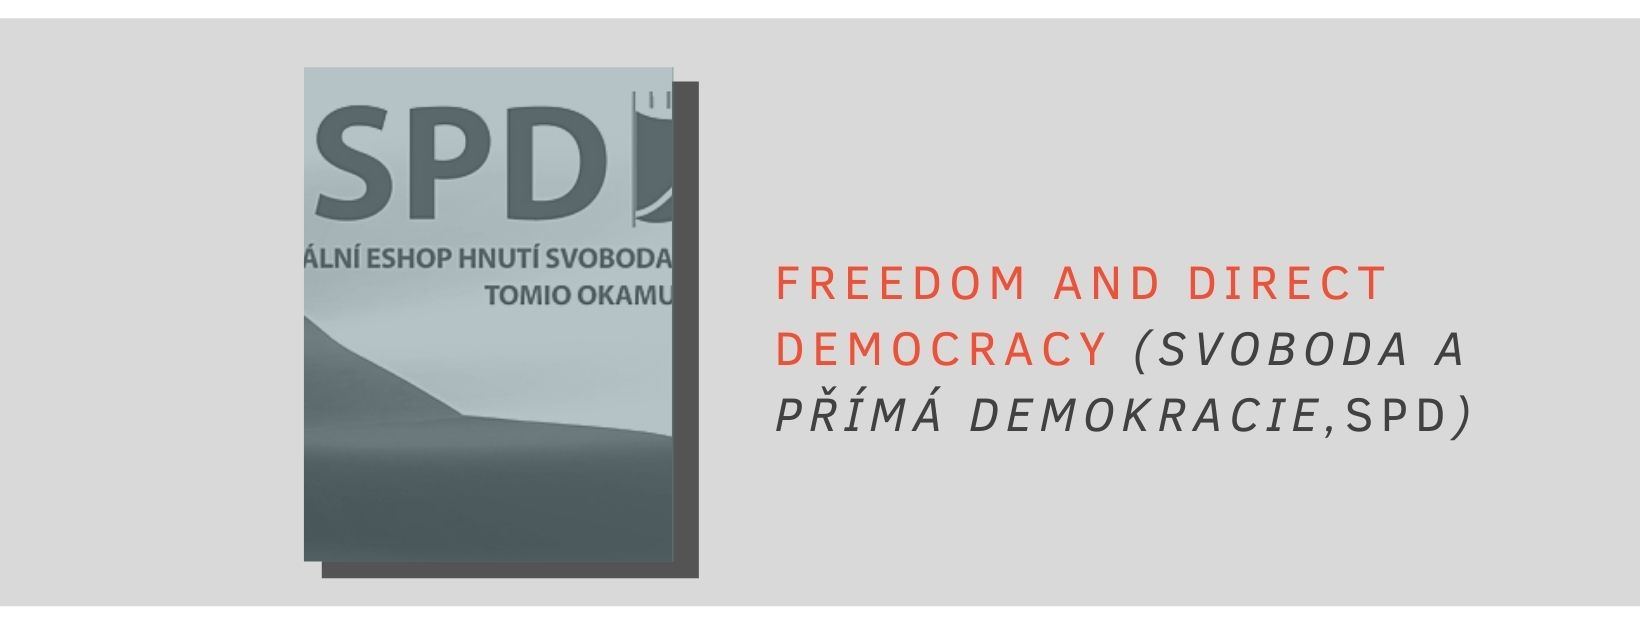 FREEDOM AND DIRECT DEMOCRACY (SVOBODA A PŘÍMÁ DEMOKRACIE, SPD)